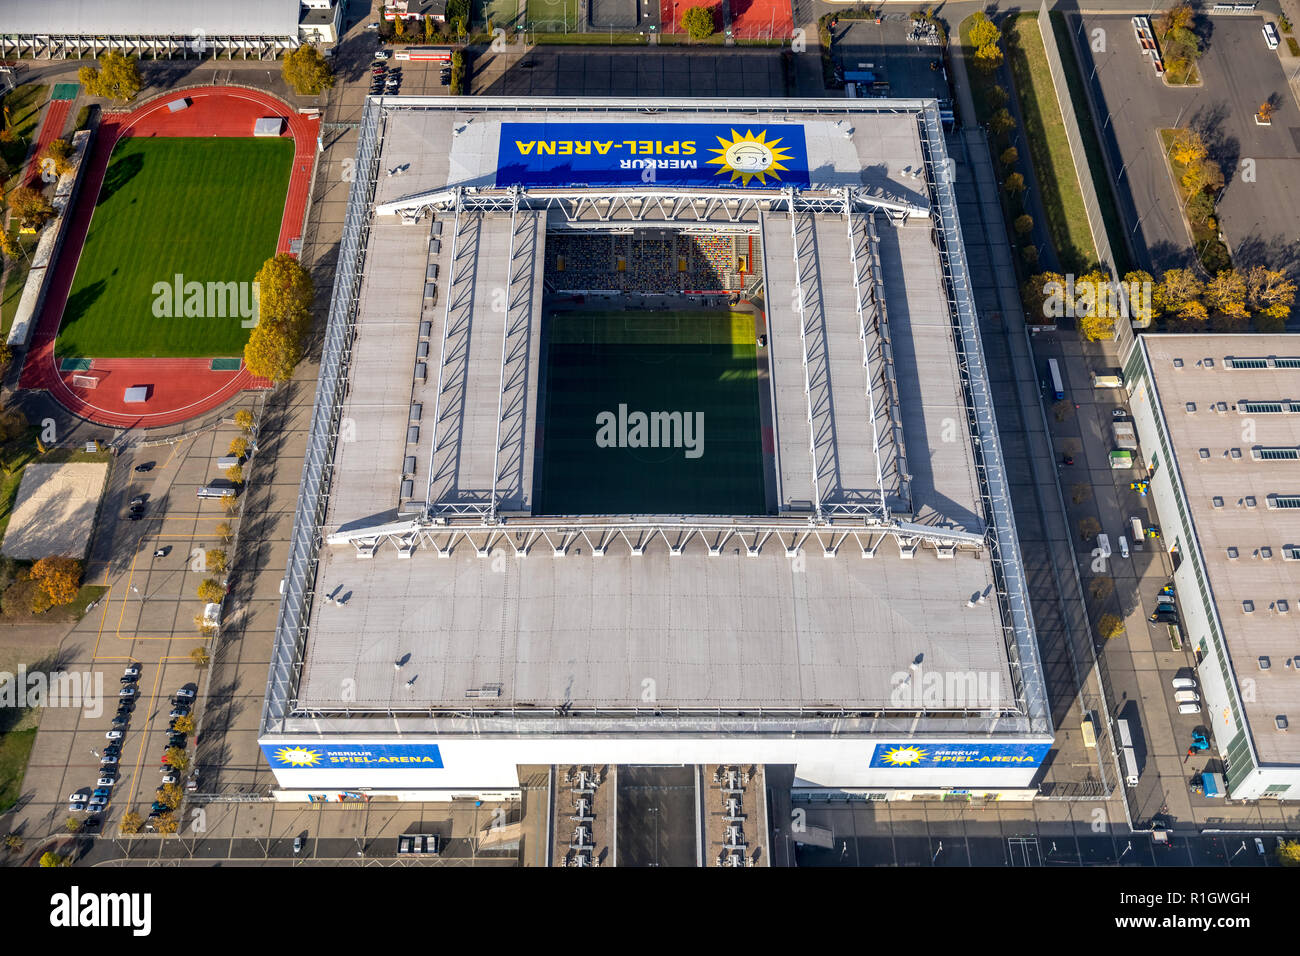 Aerial View, Merkur Gaming Arena Dusseldorf, at Dusseldorf, football stadium, convention center at the fair Dusseldorf, Stockum, Dusseldorf, Niederrhe - Stock Image